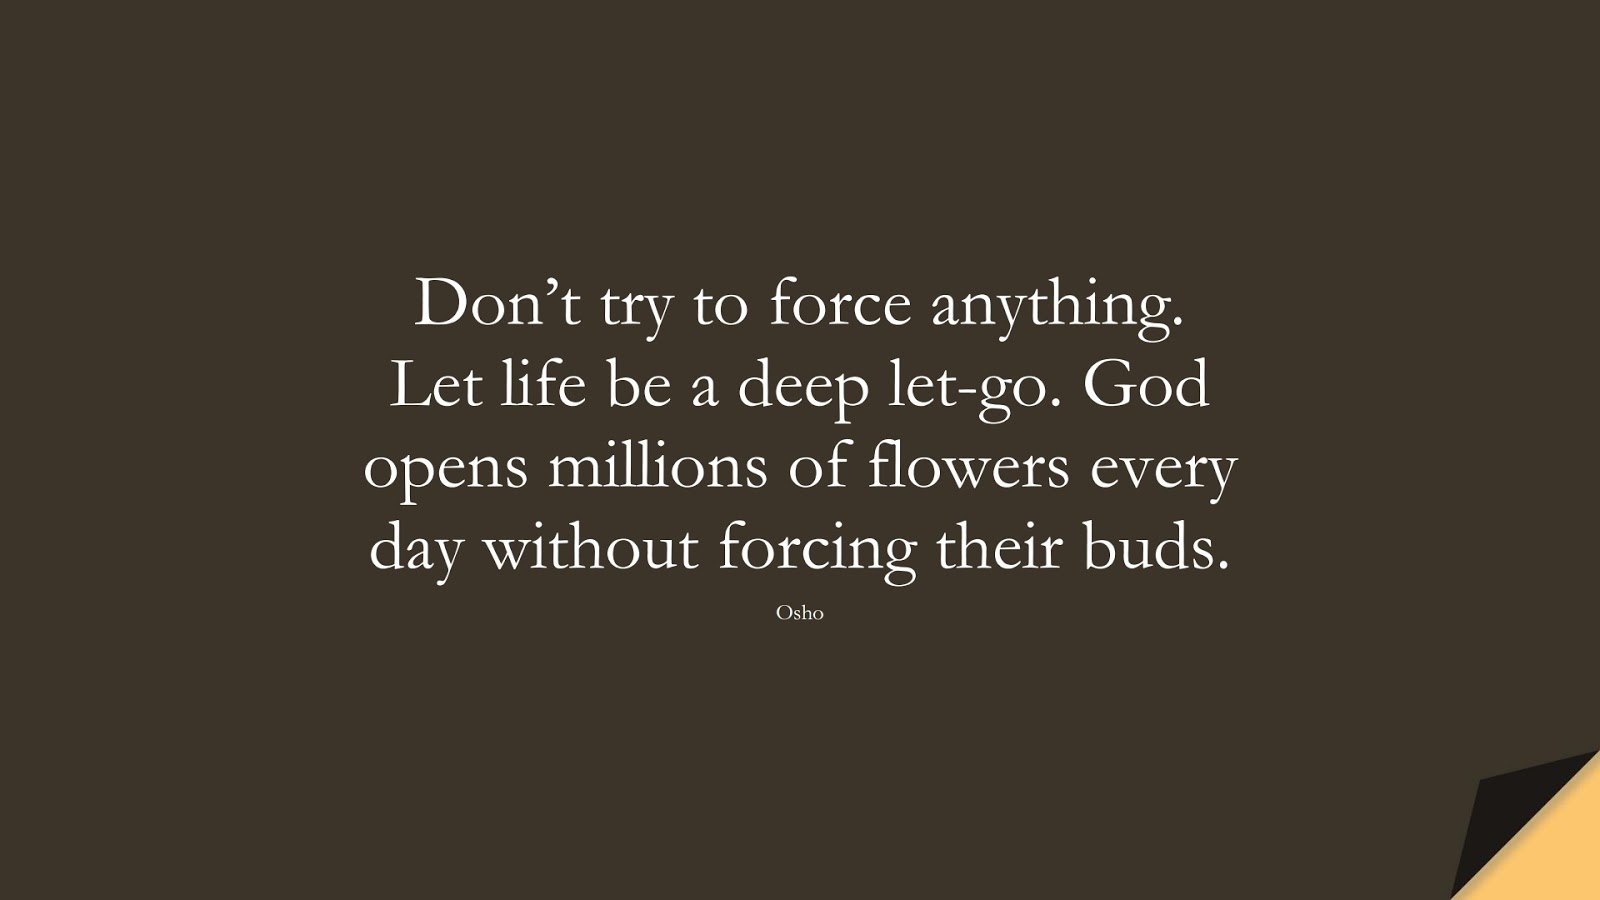 Don't try to force anything. Let life be a deep let-go. God opens millions of flowers every day without forcing their buds. (Osho);  #StressQuotes